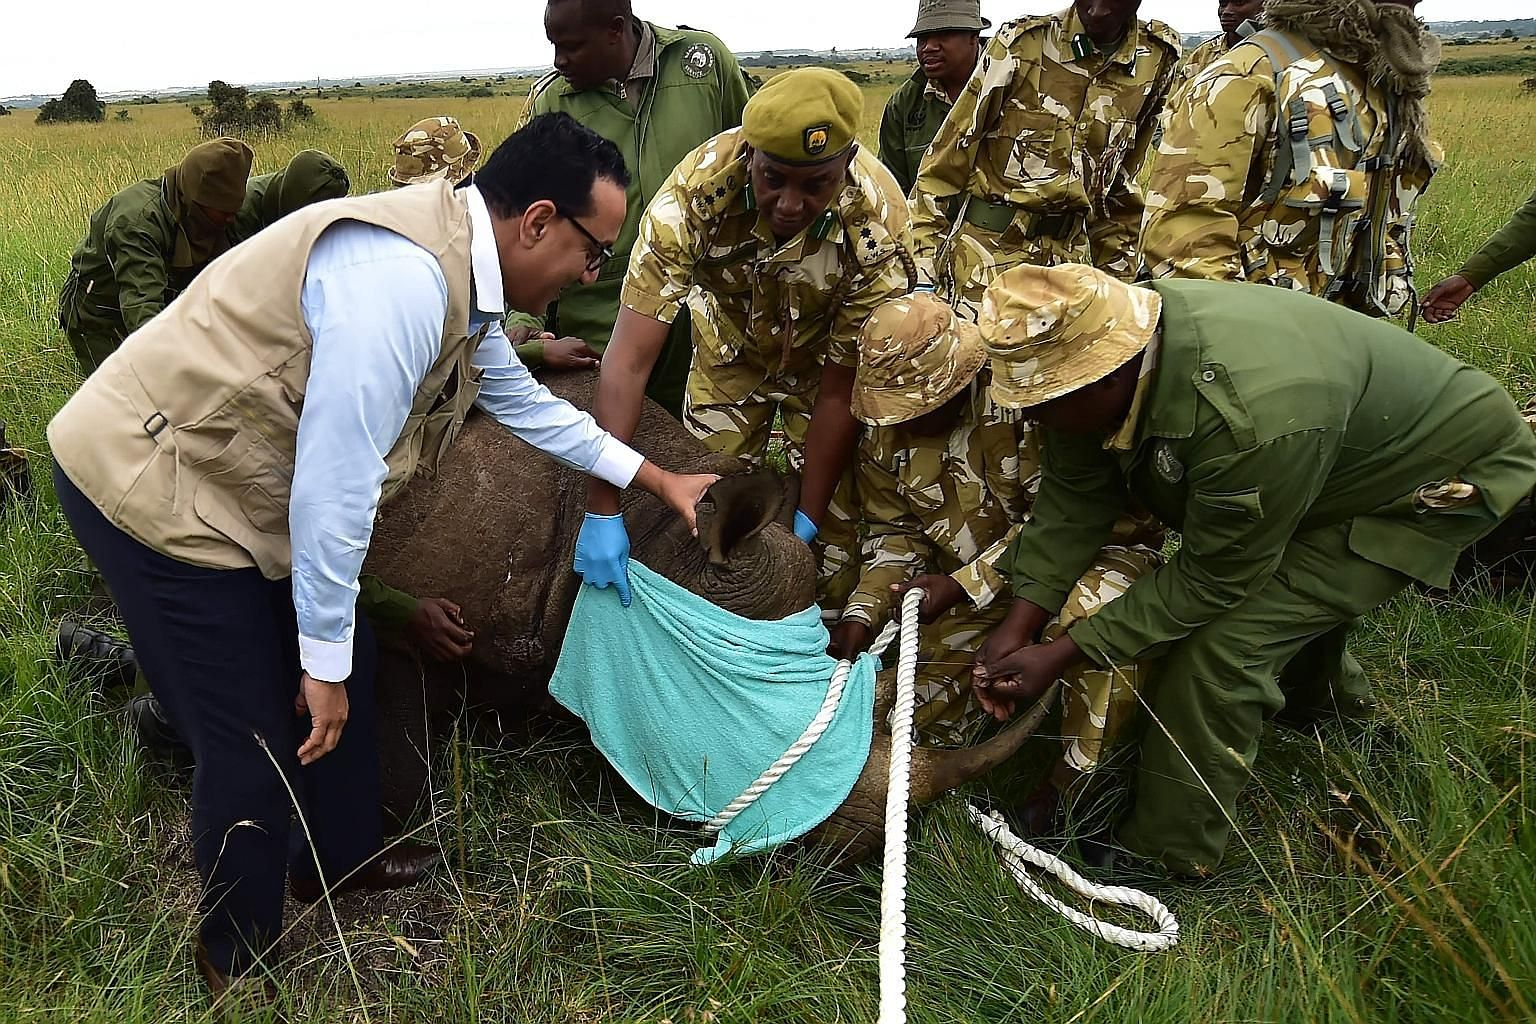 Kenya's Tourism and Wildlife Minister Najib Balala looking on as wildlife services personnel subdued a sedated black rhino in Nairobi National Park for transfer to a new sanctuary in Tsavo East in June.